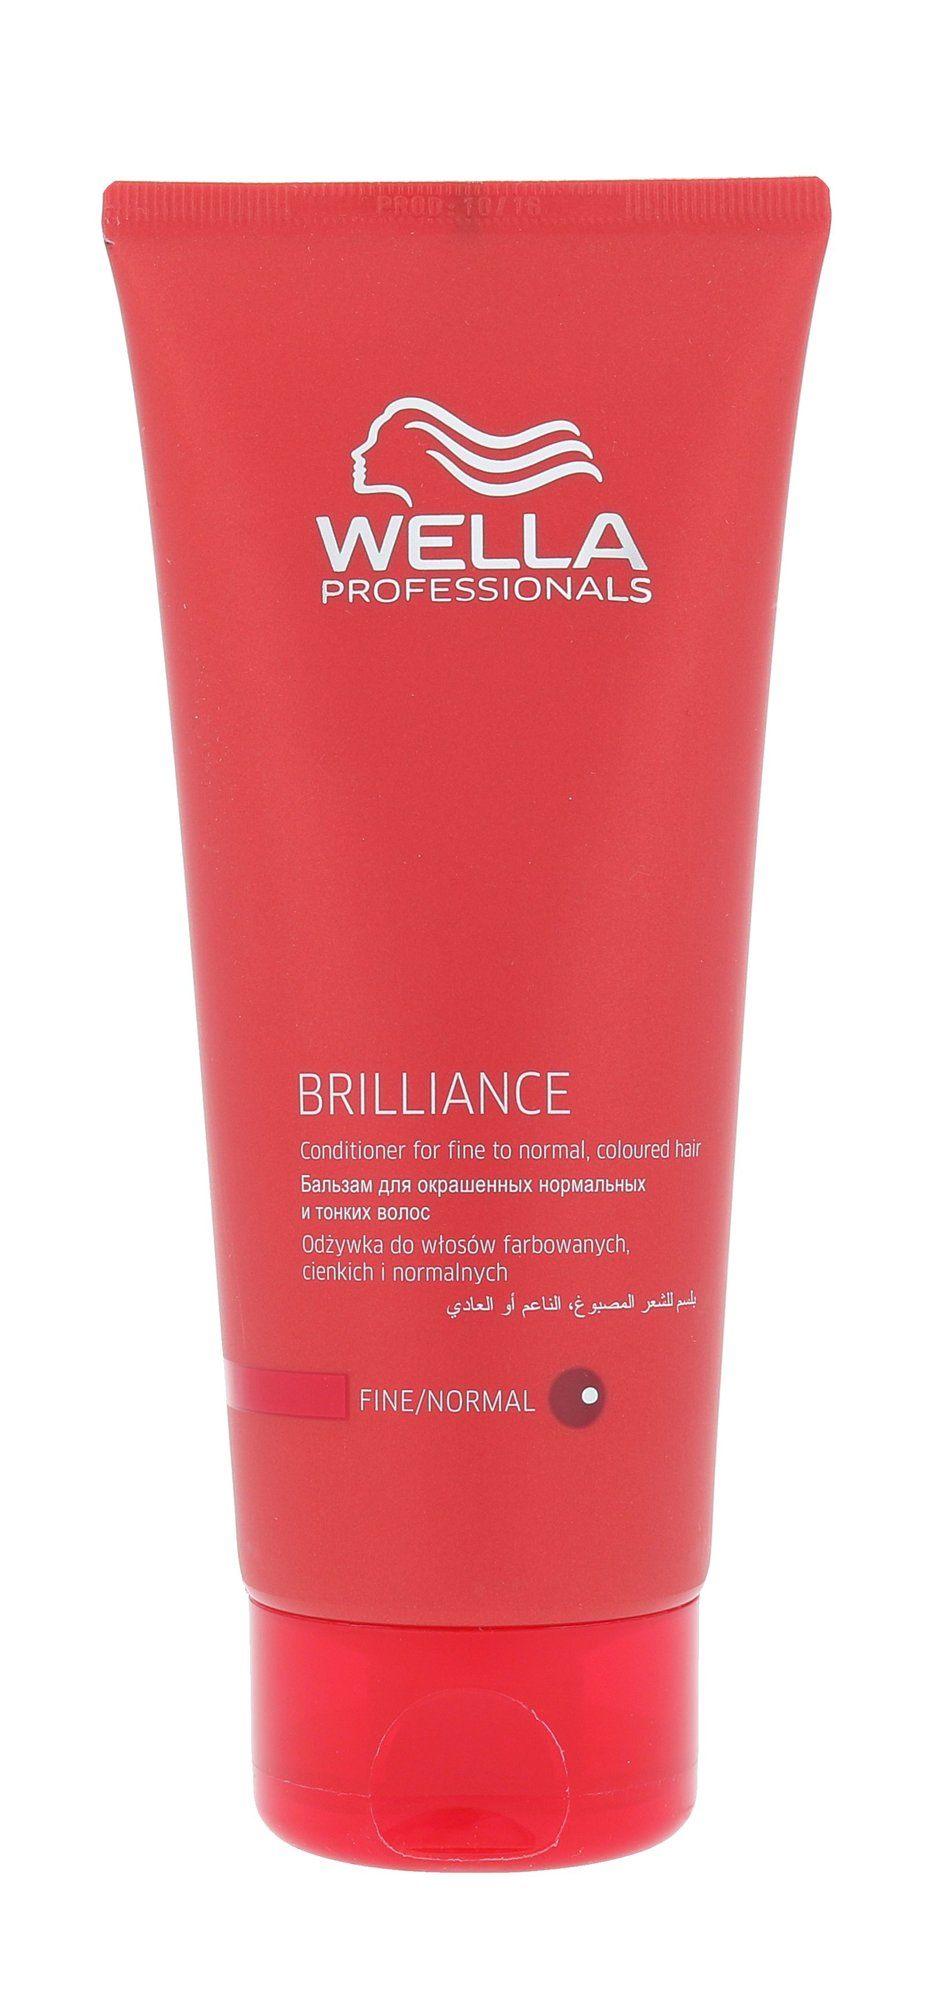 Wella Brilliance Cosmetic 200ml